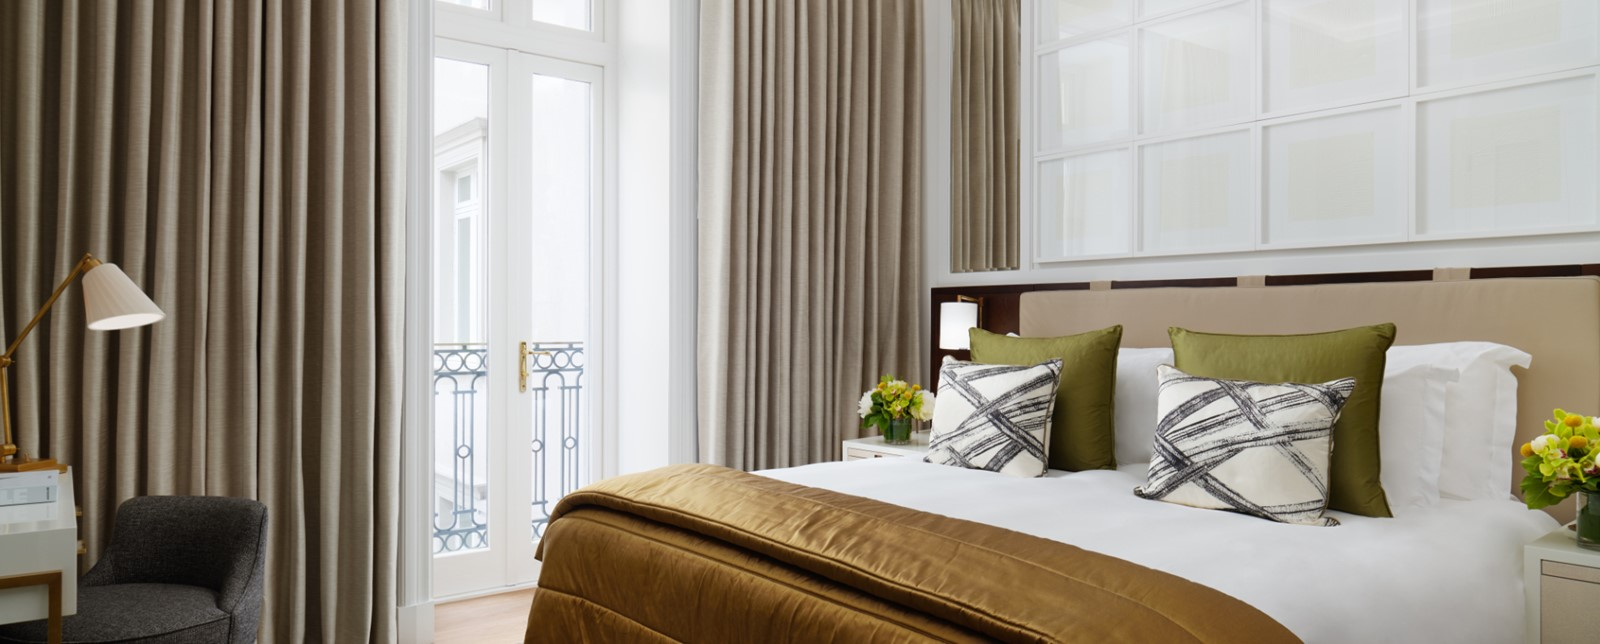 corinthia ldon garden suite bedroom